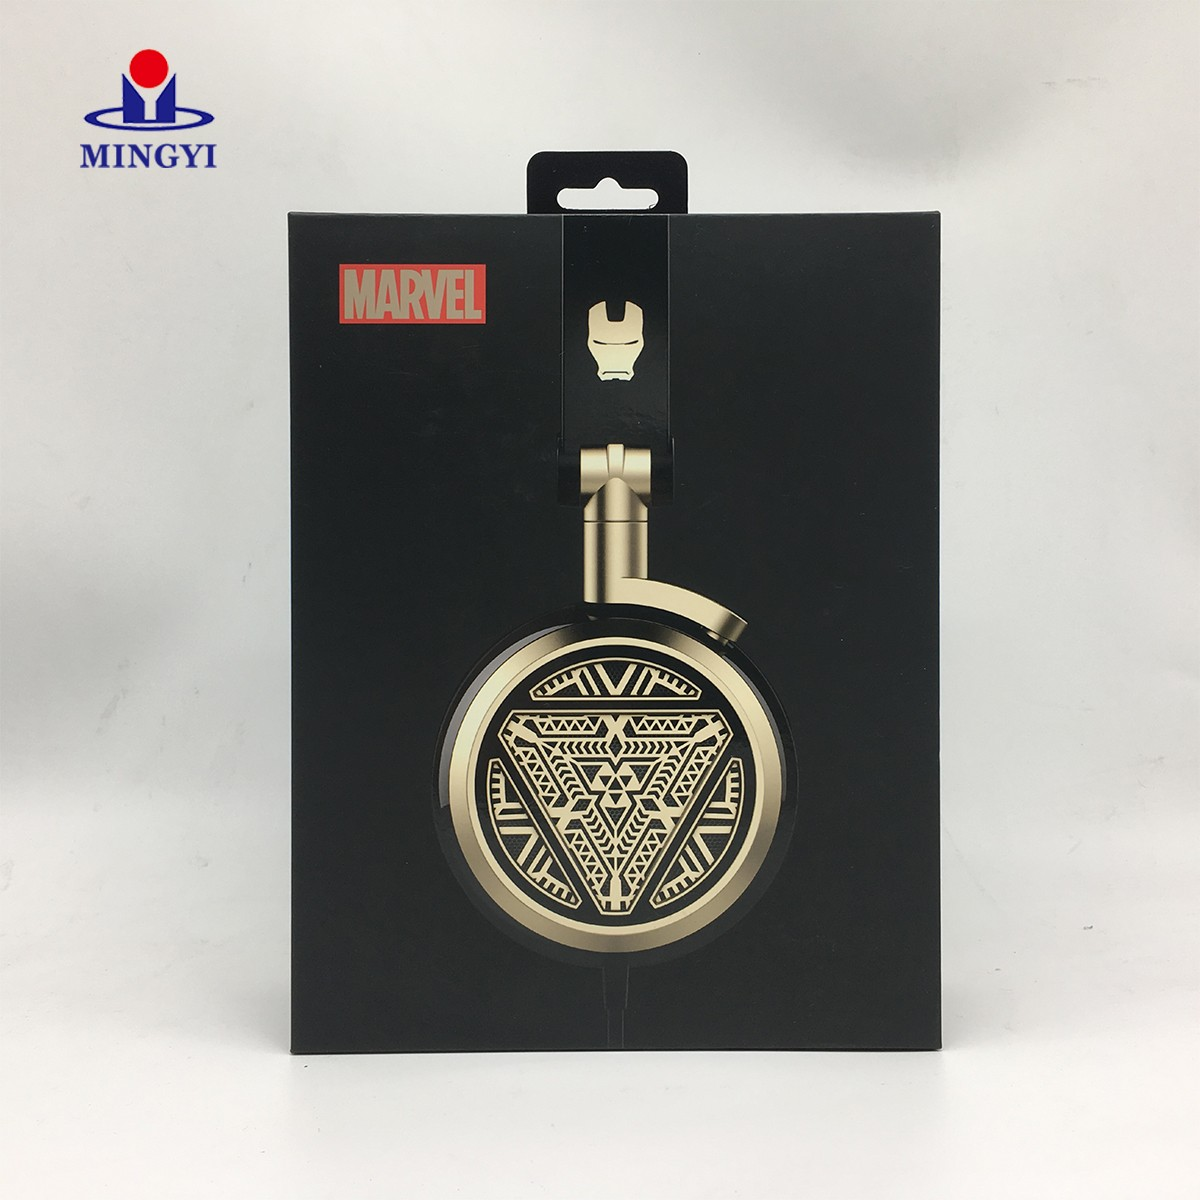 news-Mingyi Printing-New custom design Iron man style headphones packaging box-img-3